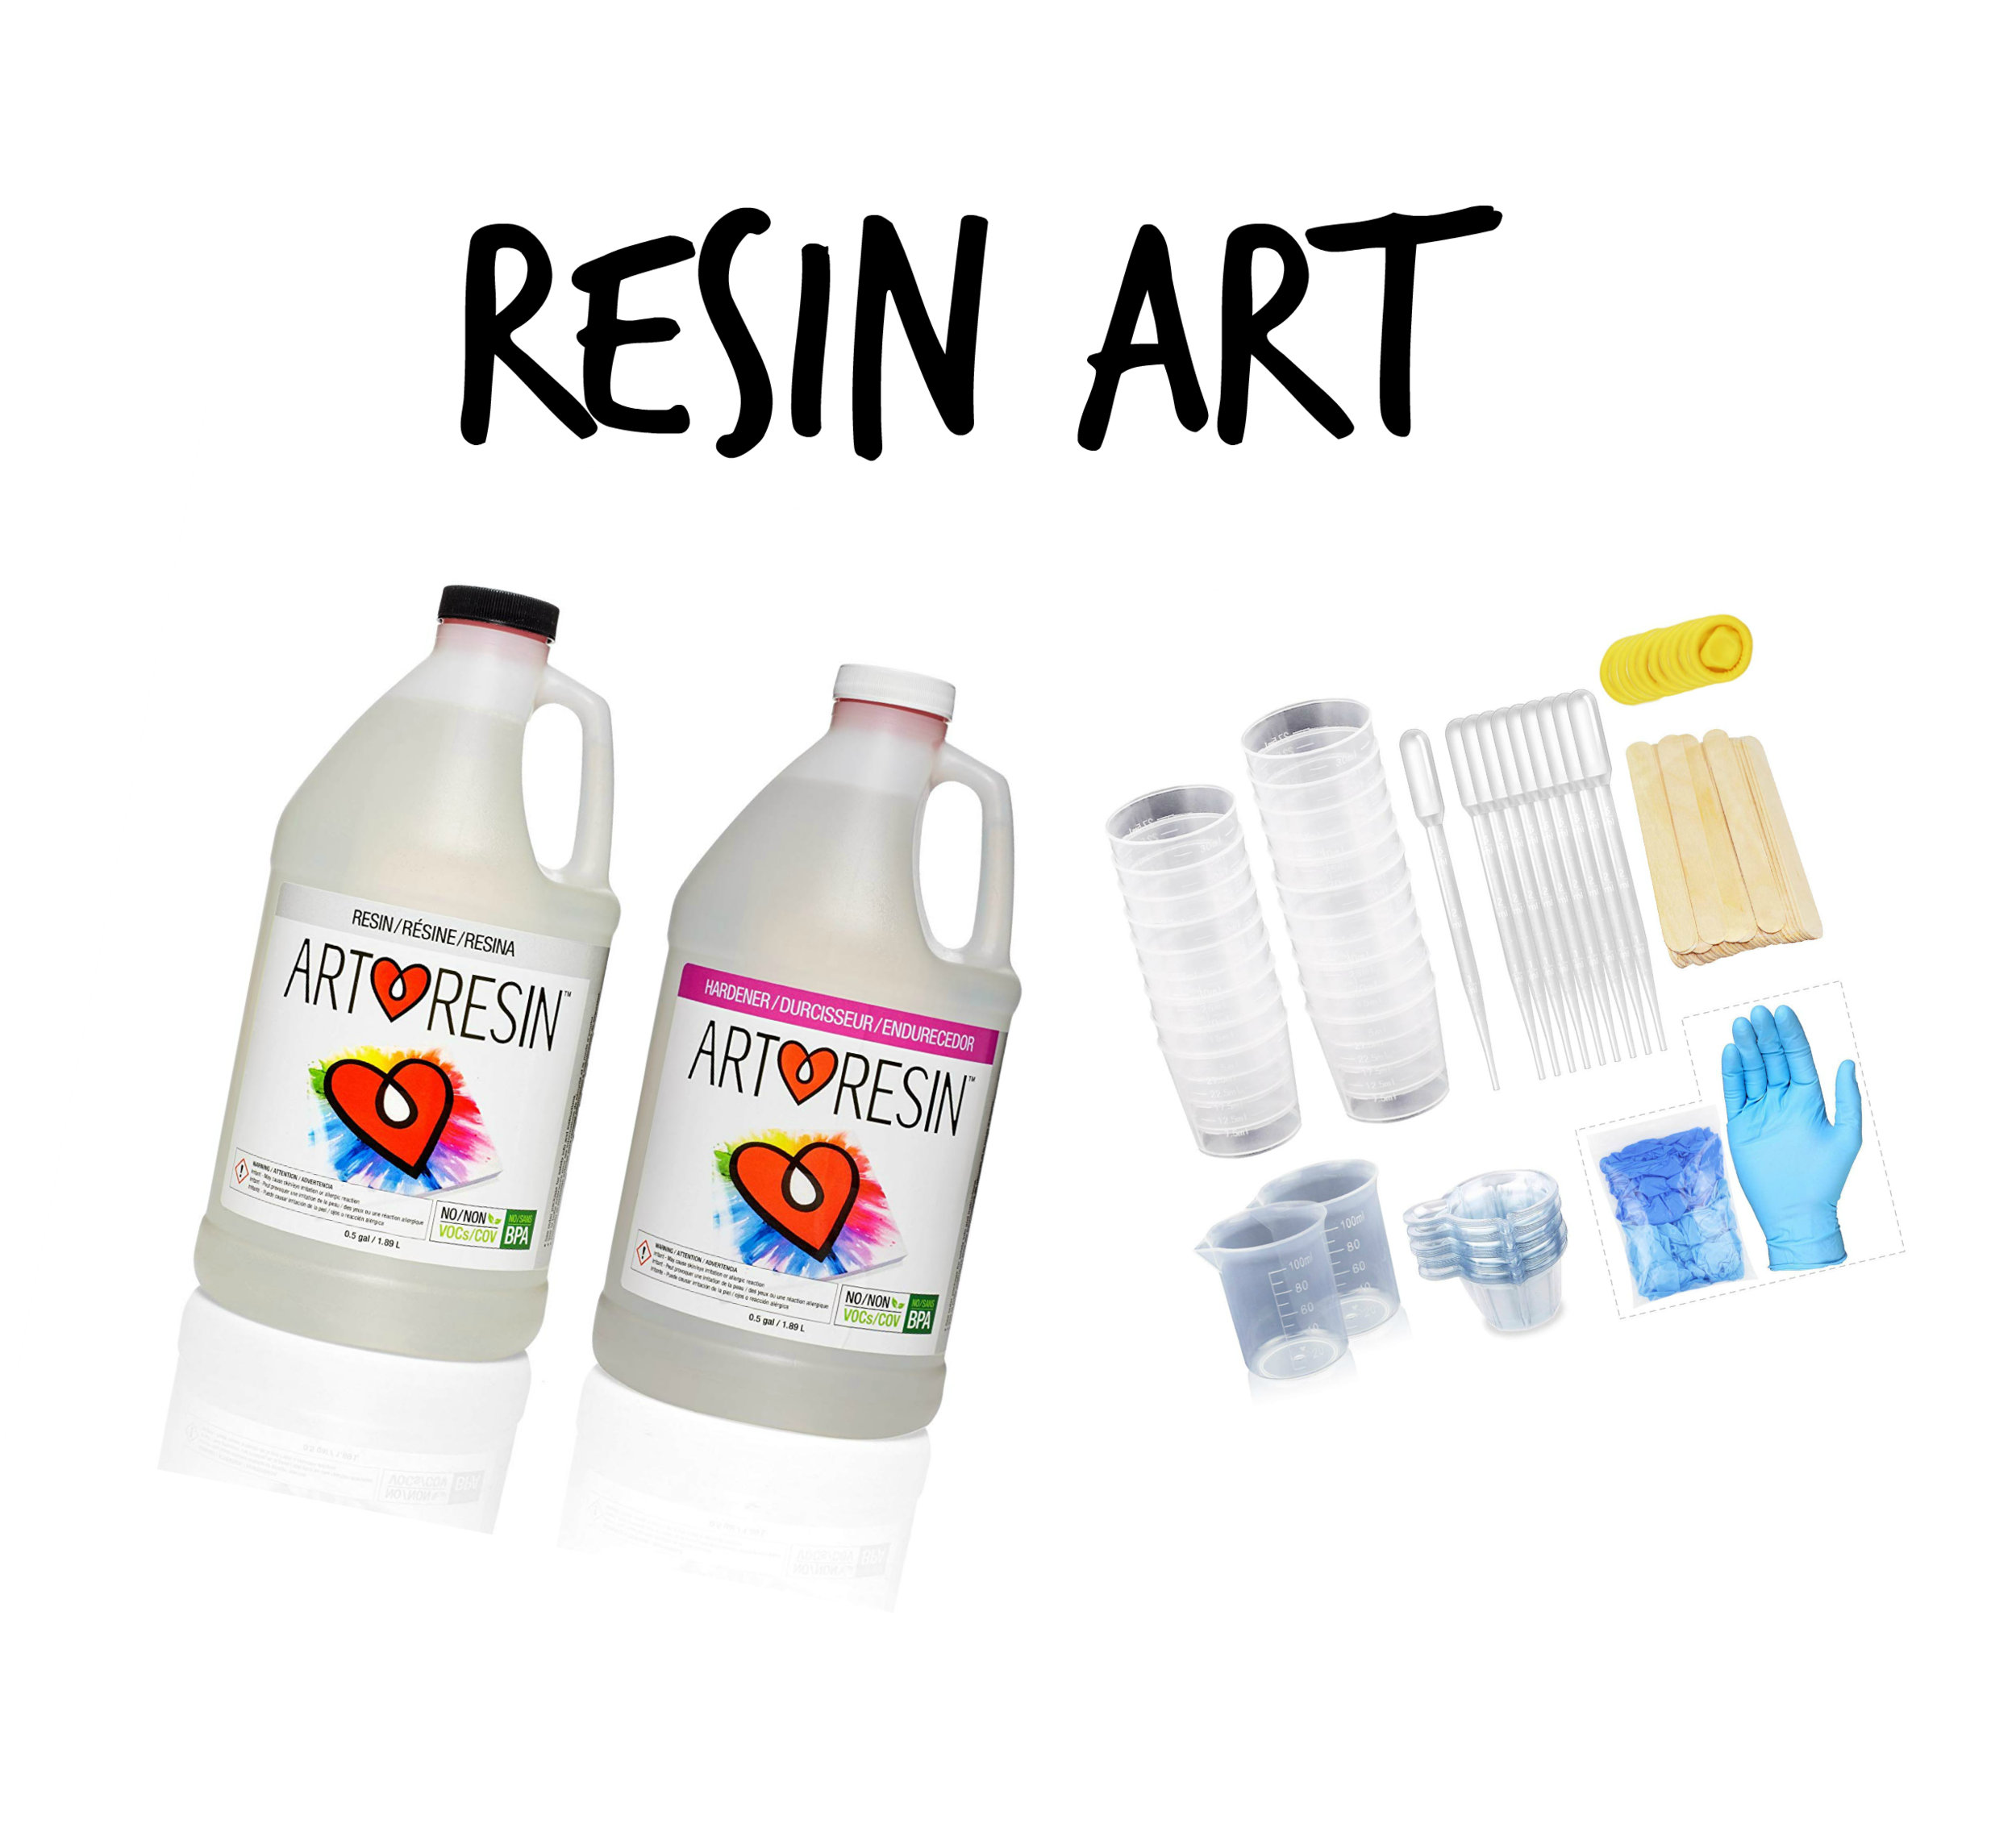 - ArtResin claims to be the safest resin and is okay-ed for in-home use. I still have been wearing a respirator. The heat gun can be used to eliminate bubbles. Definitely use gloves and protect your skin and working area!